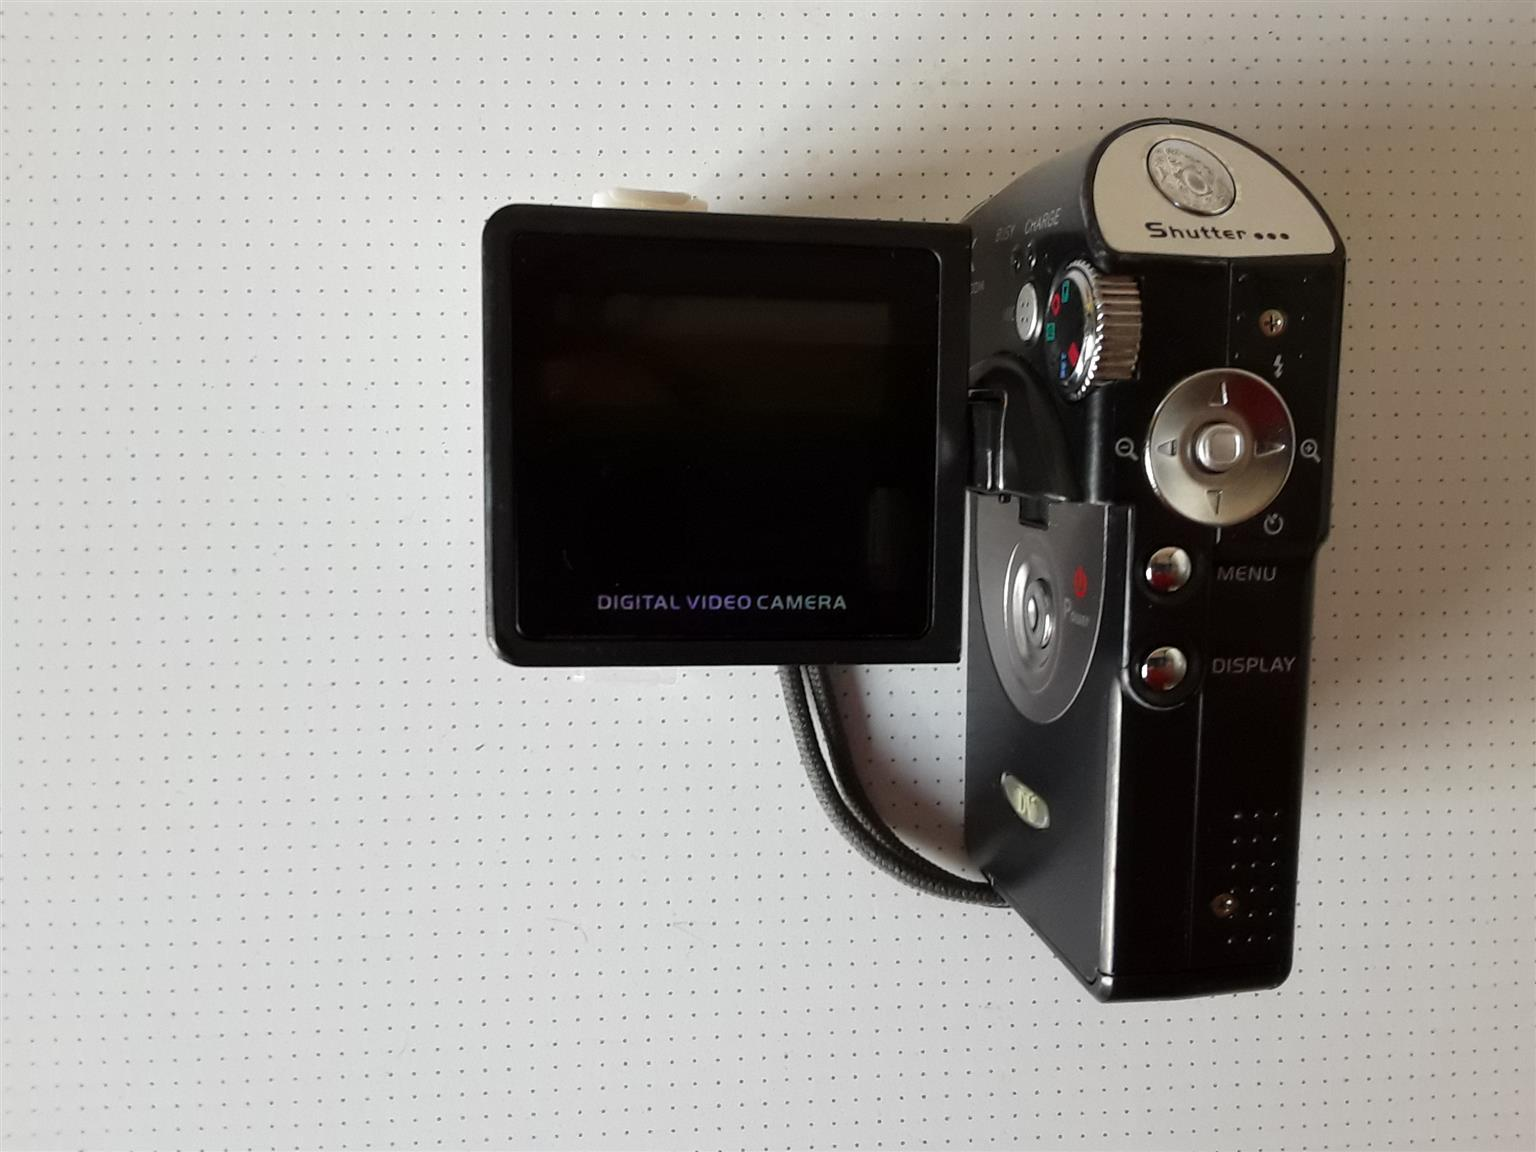 Handheld Digital Video Camera. 12 Megapixels. Records Directly to SD Card. With Pouch. With LCD